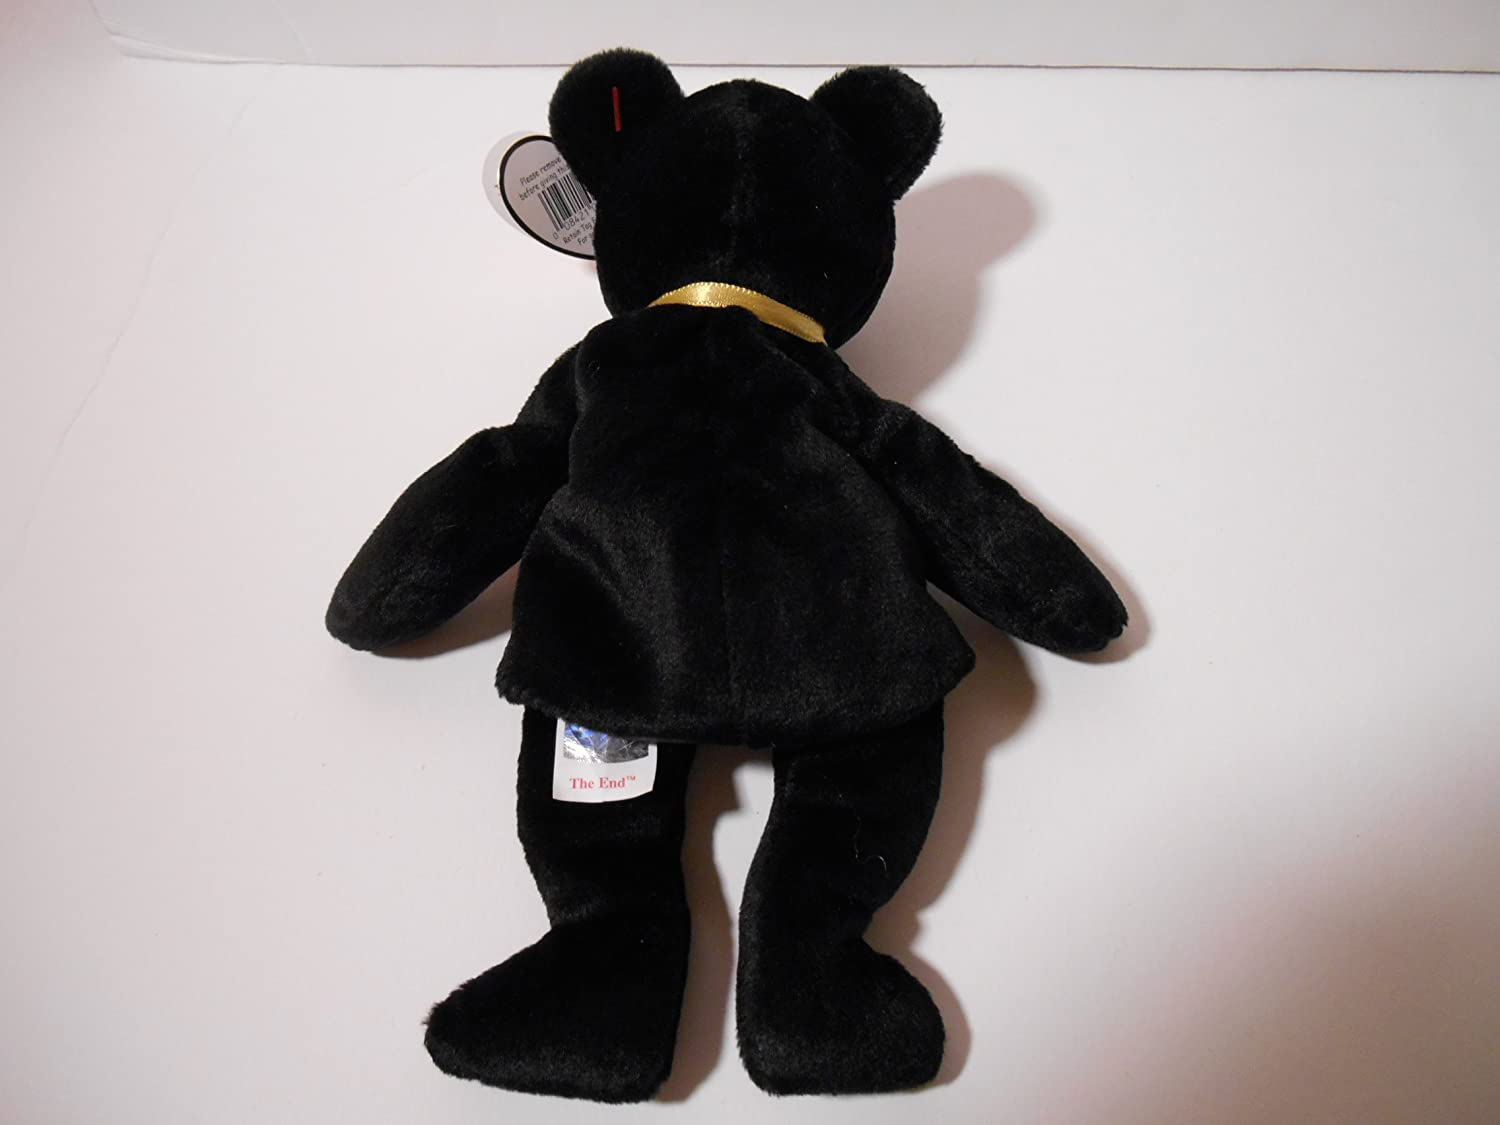 Amazon.com  Ty Beanie Babies - The End Black Teddy Bear  Holiday Gifts    Toys   Games 216e988f48